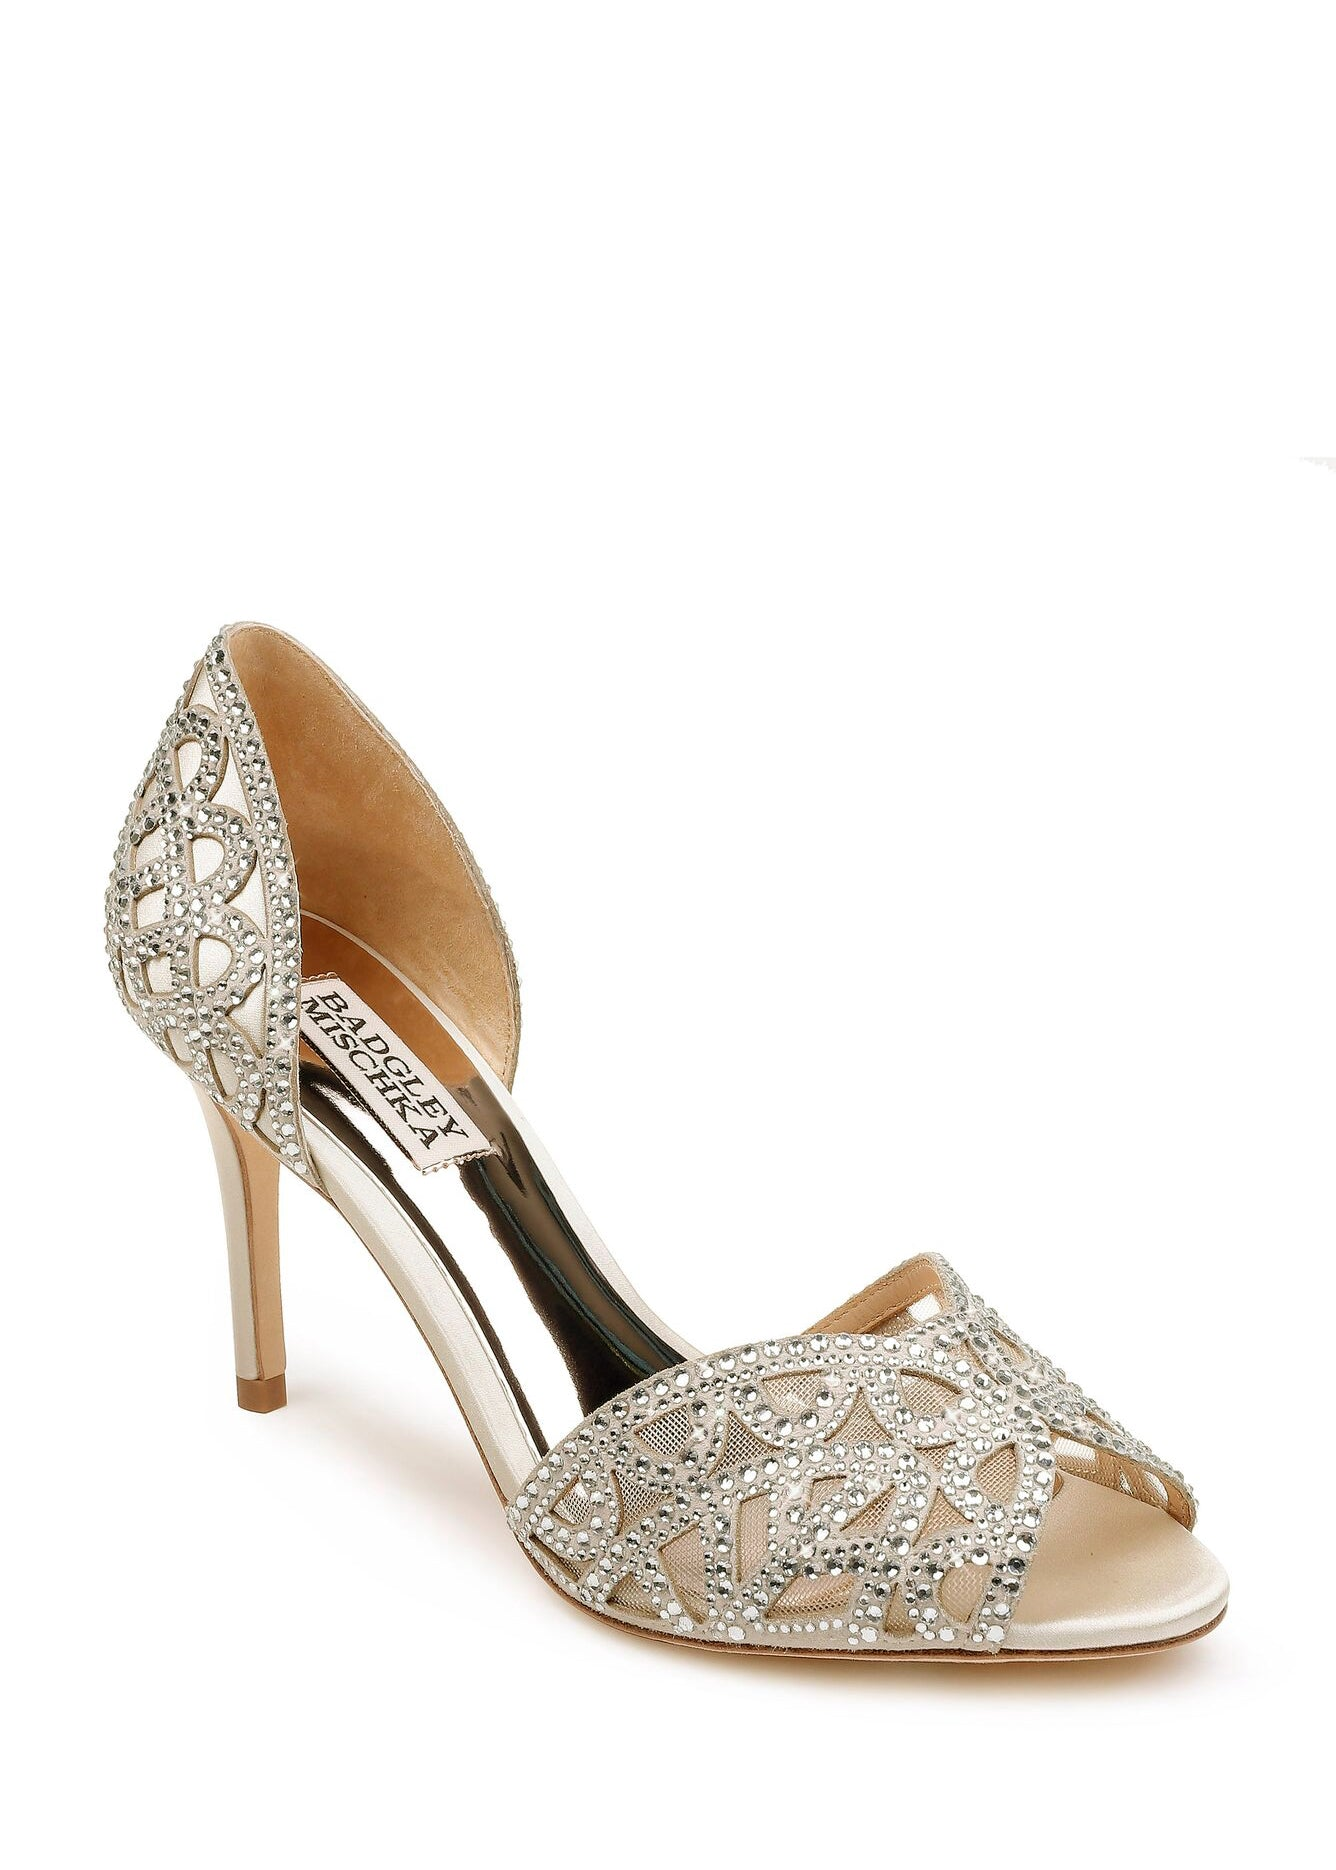 Harris - Last Pair, Shoes, Badgley Mischka - Eternal Bridal